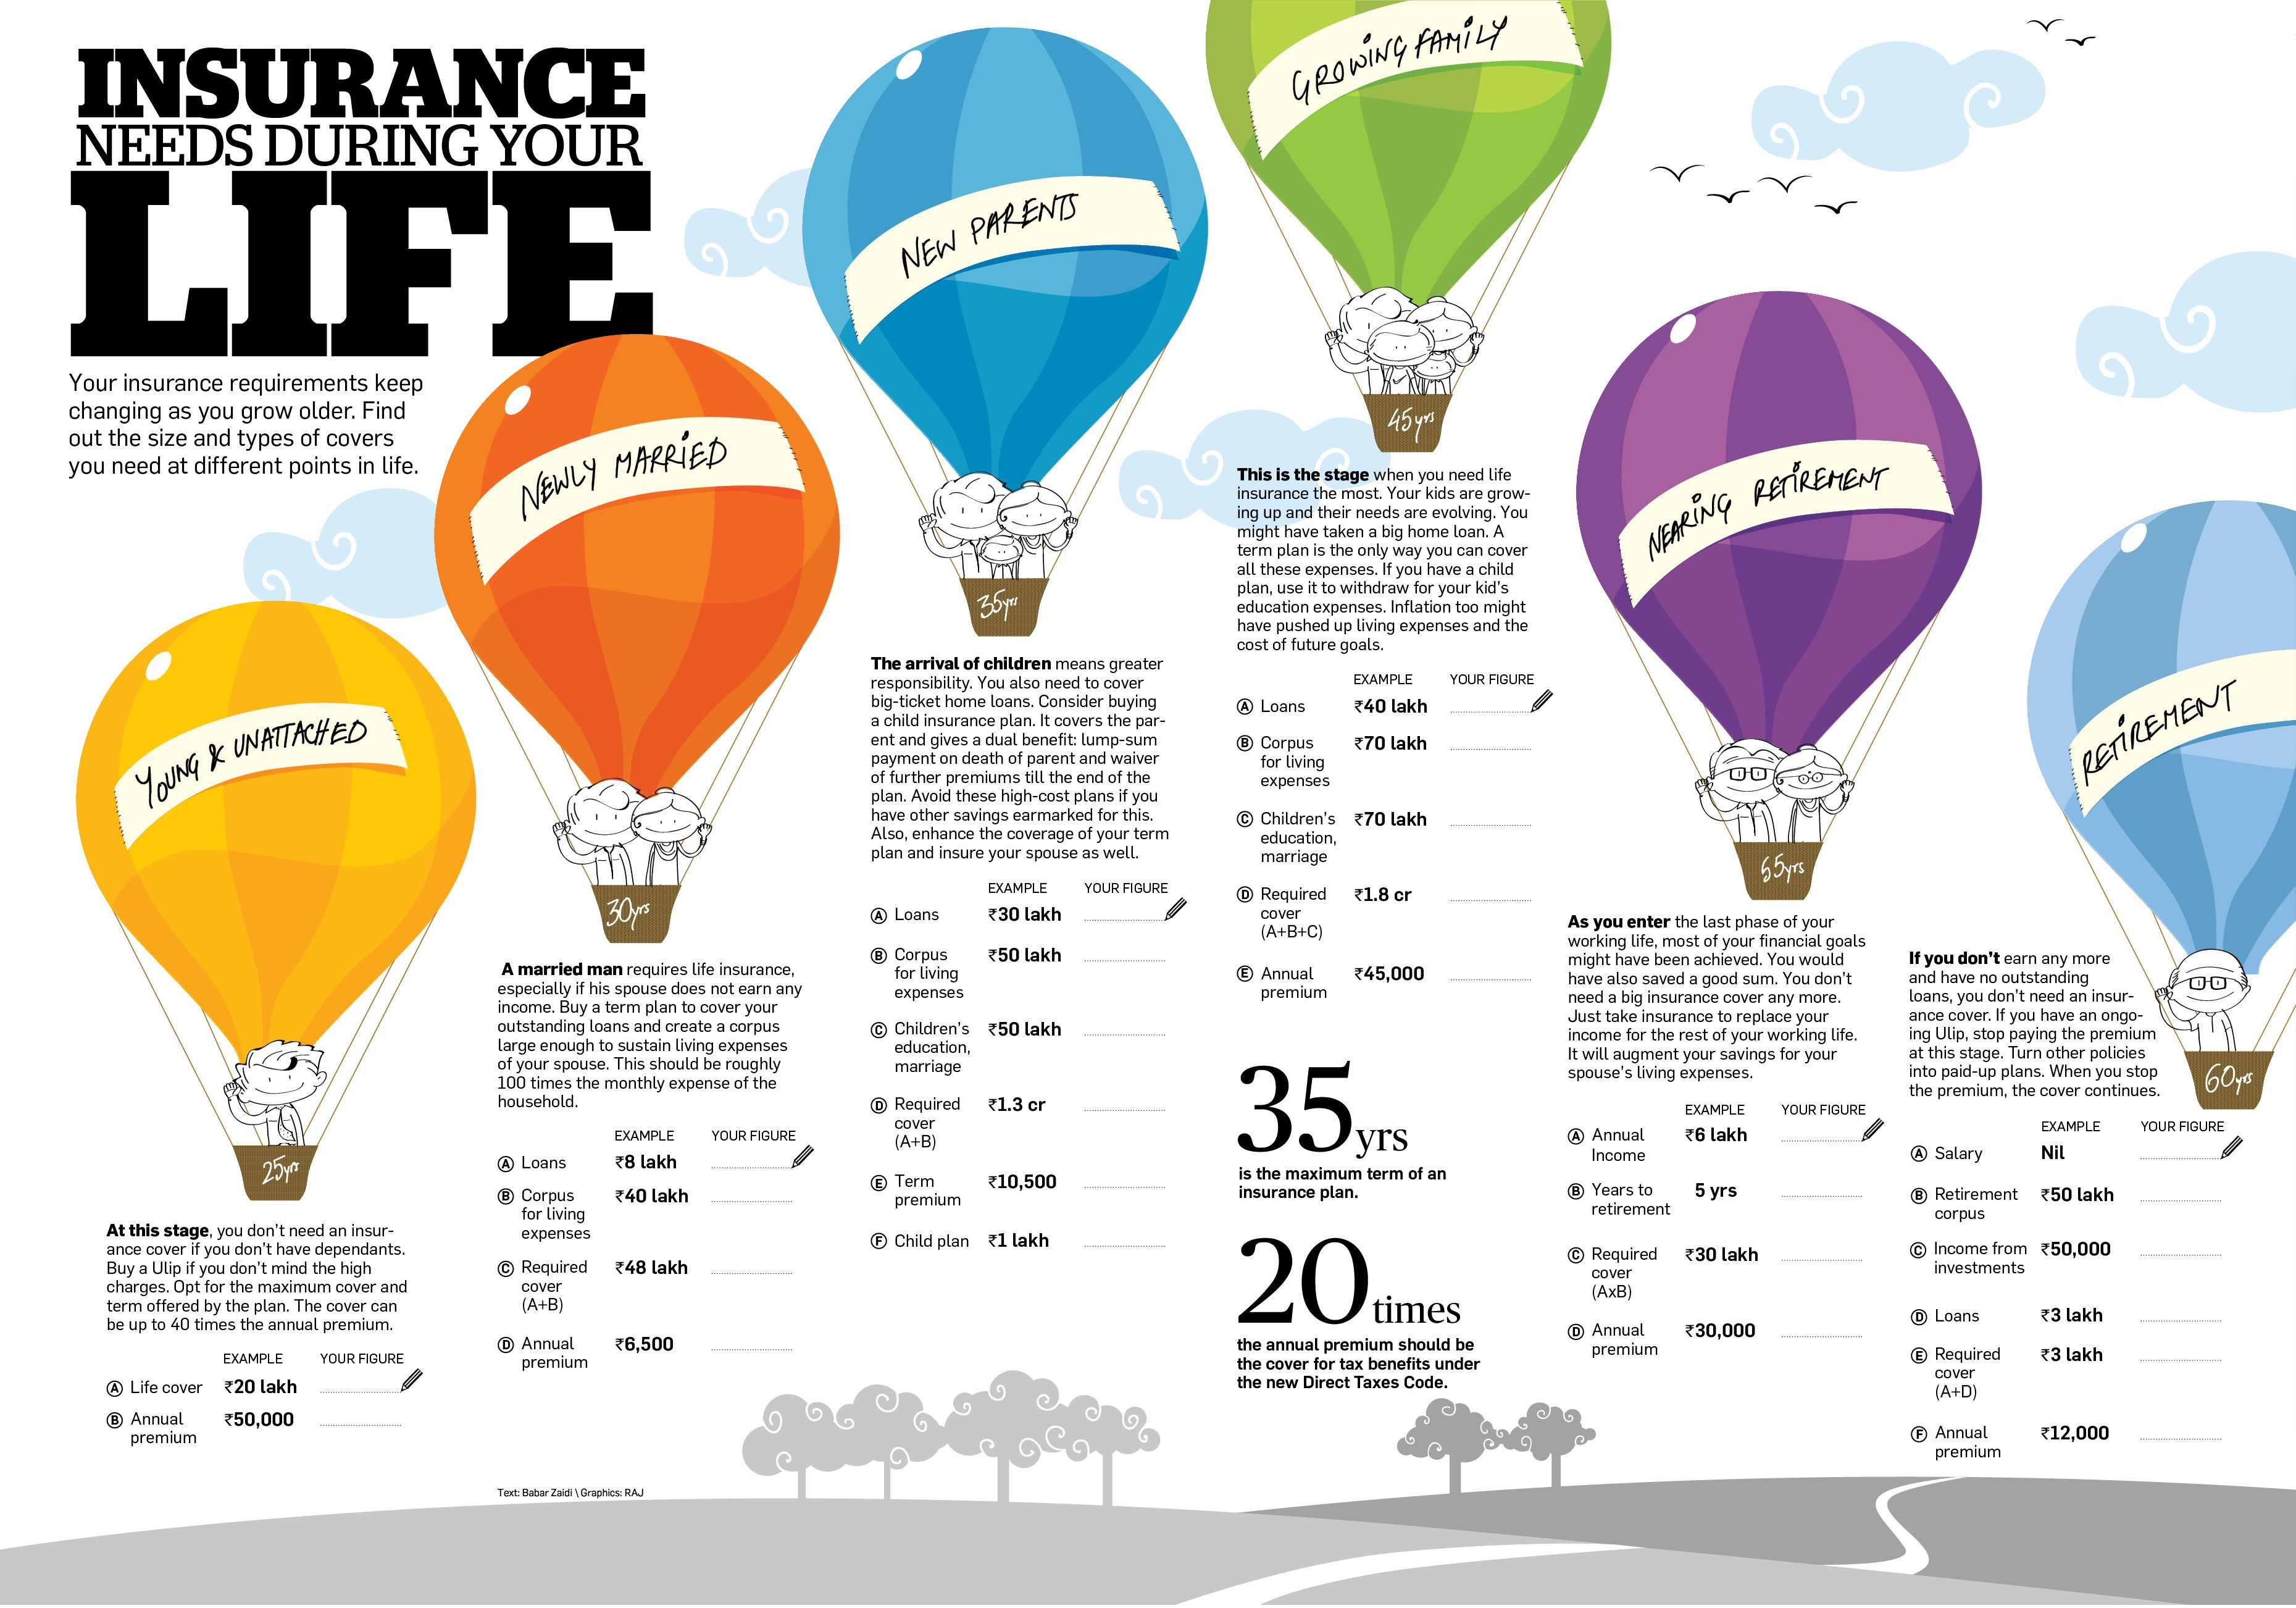 Insurance Needs During Your Life (India, rupees) Life